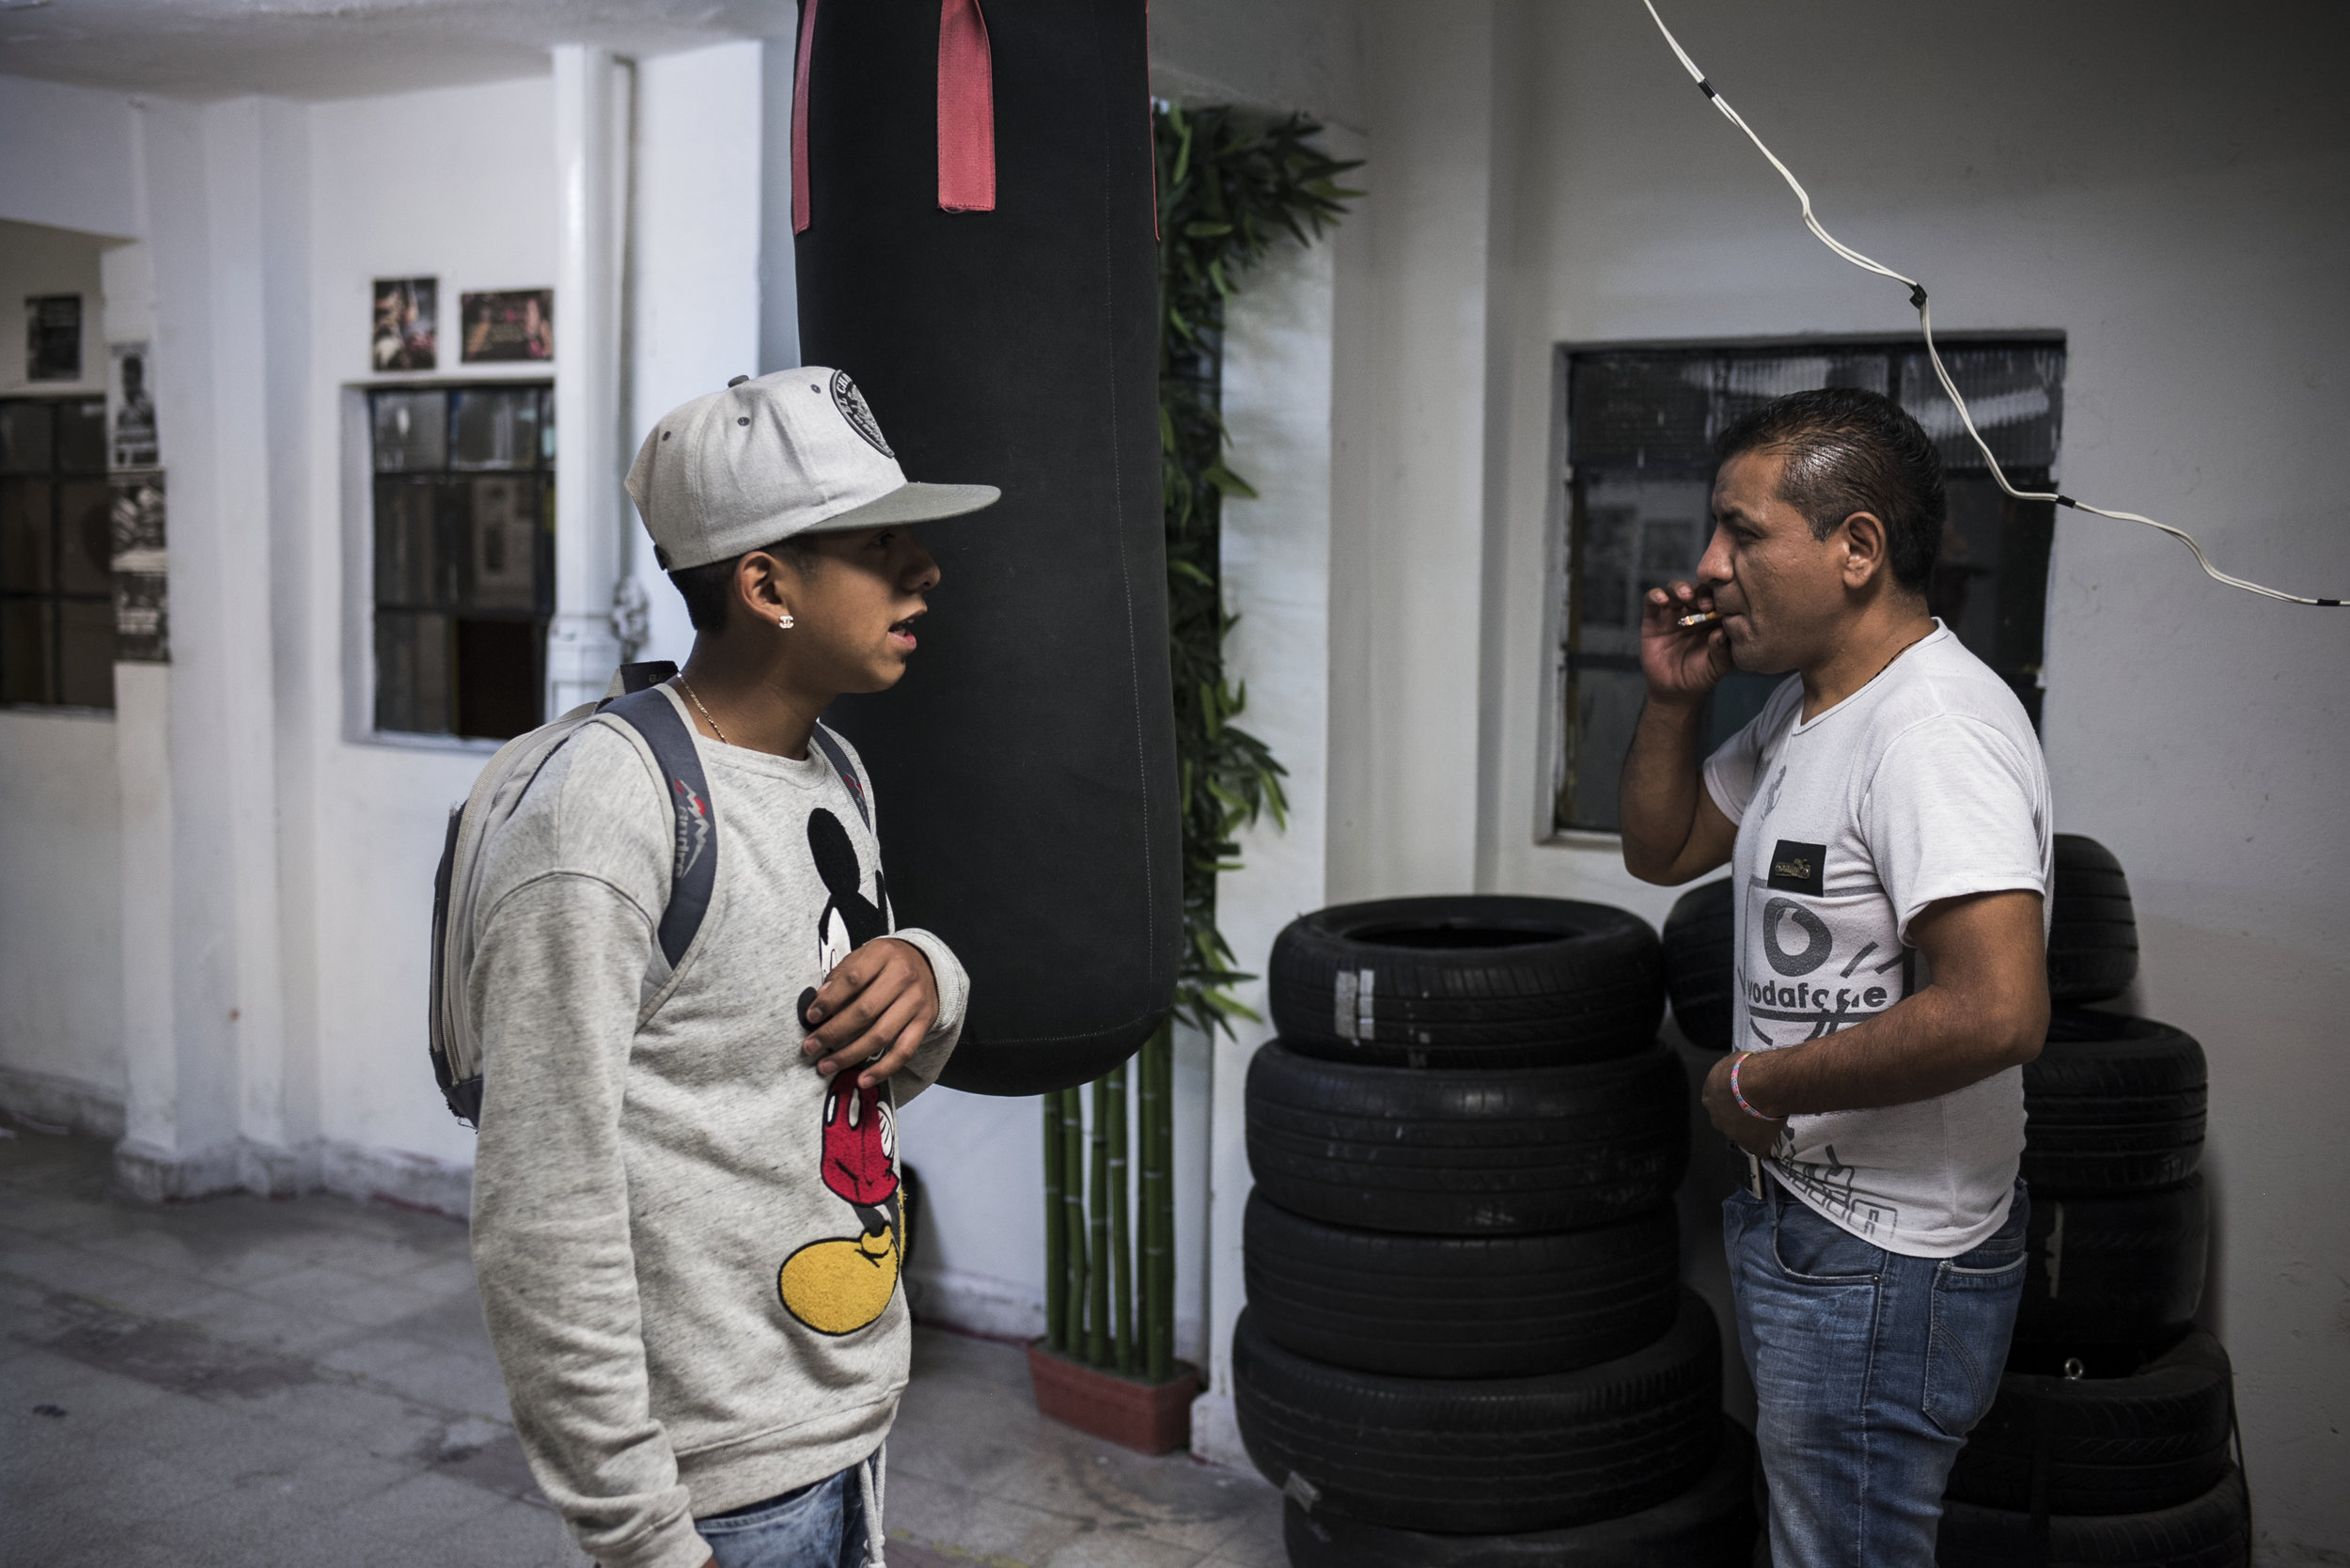 Pancho's coach, Jorge Angeles, chastises Pancho for missing practice the day before on February 28, 2017 in the Tepito neighborhood of Mexico City. Jorge, who says his biggest challenge as a coach are the rebellious kids, hopes Pancho will compete in Mexico's golden glove tournament but is frustrated that he doesn't show up to training enough.